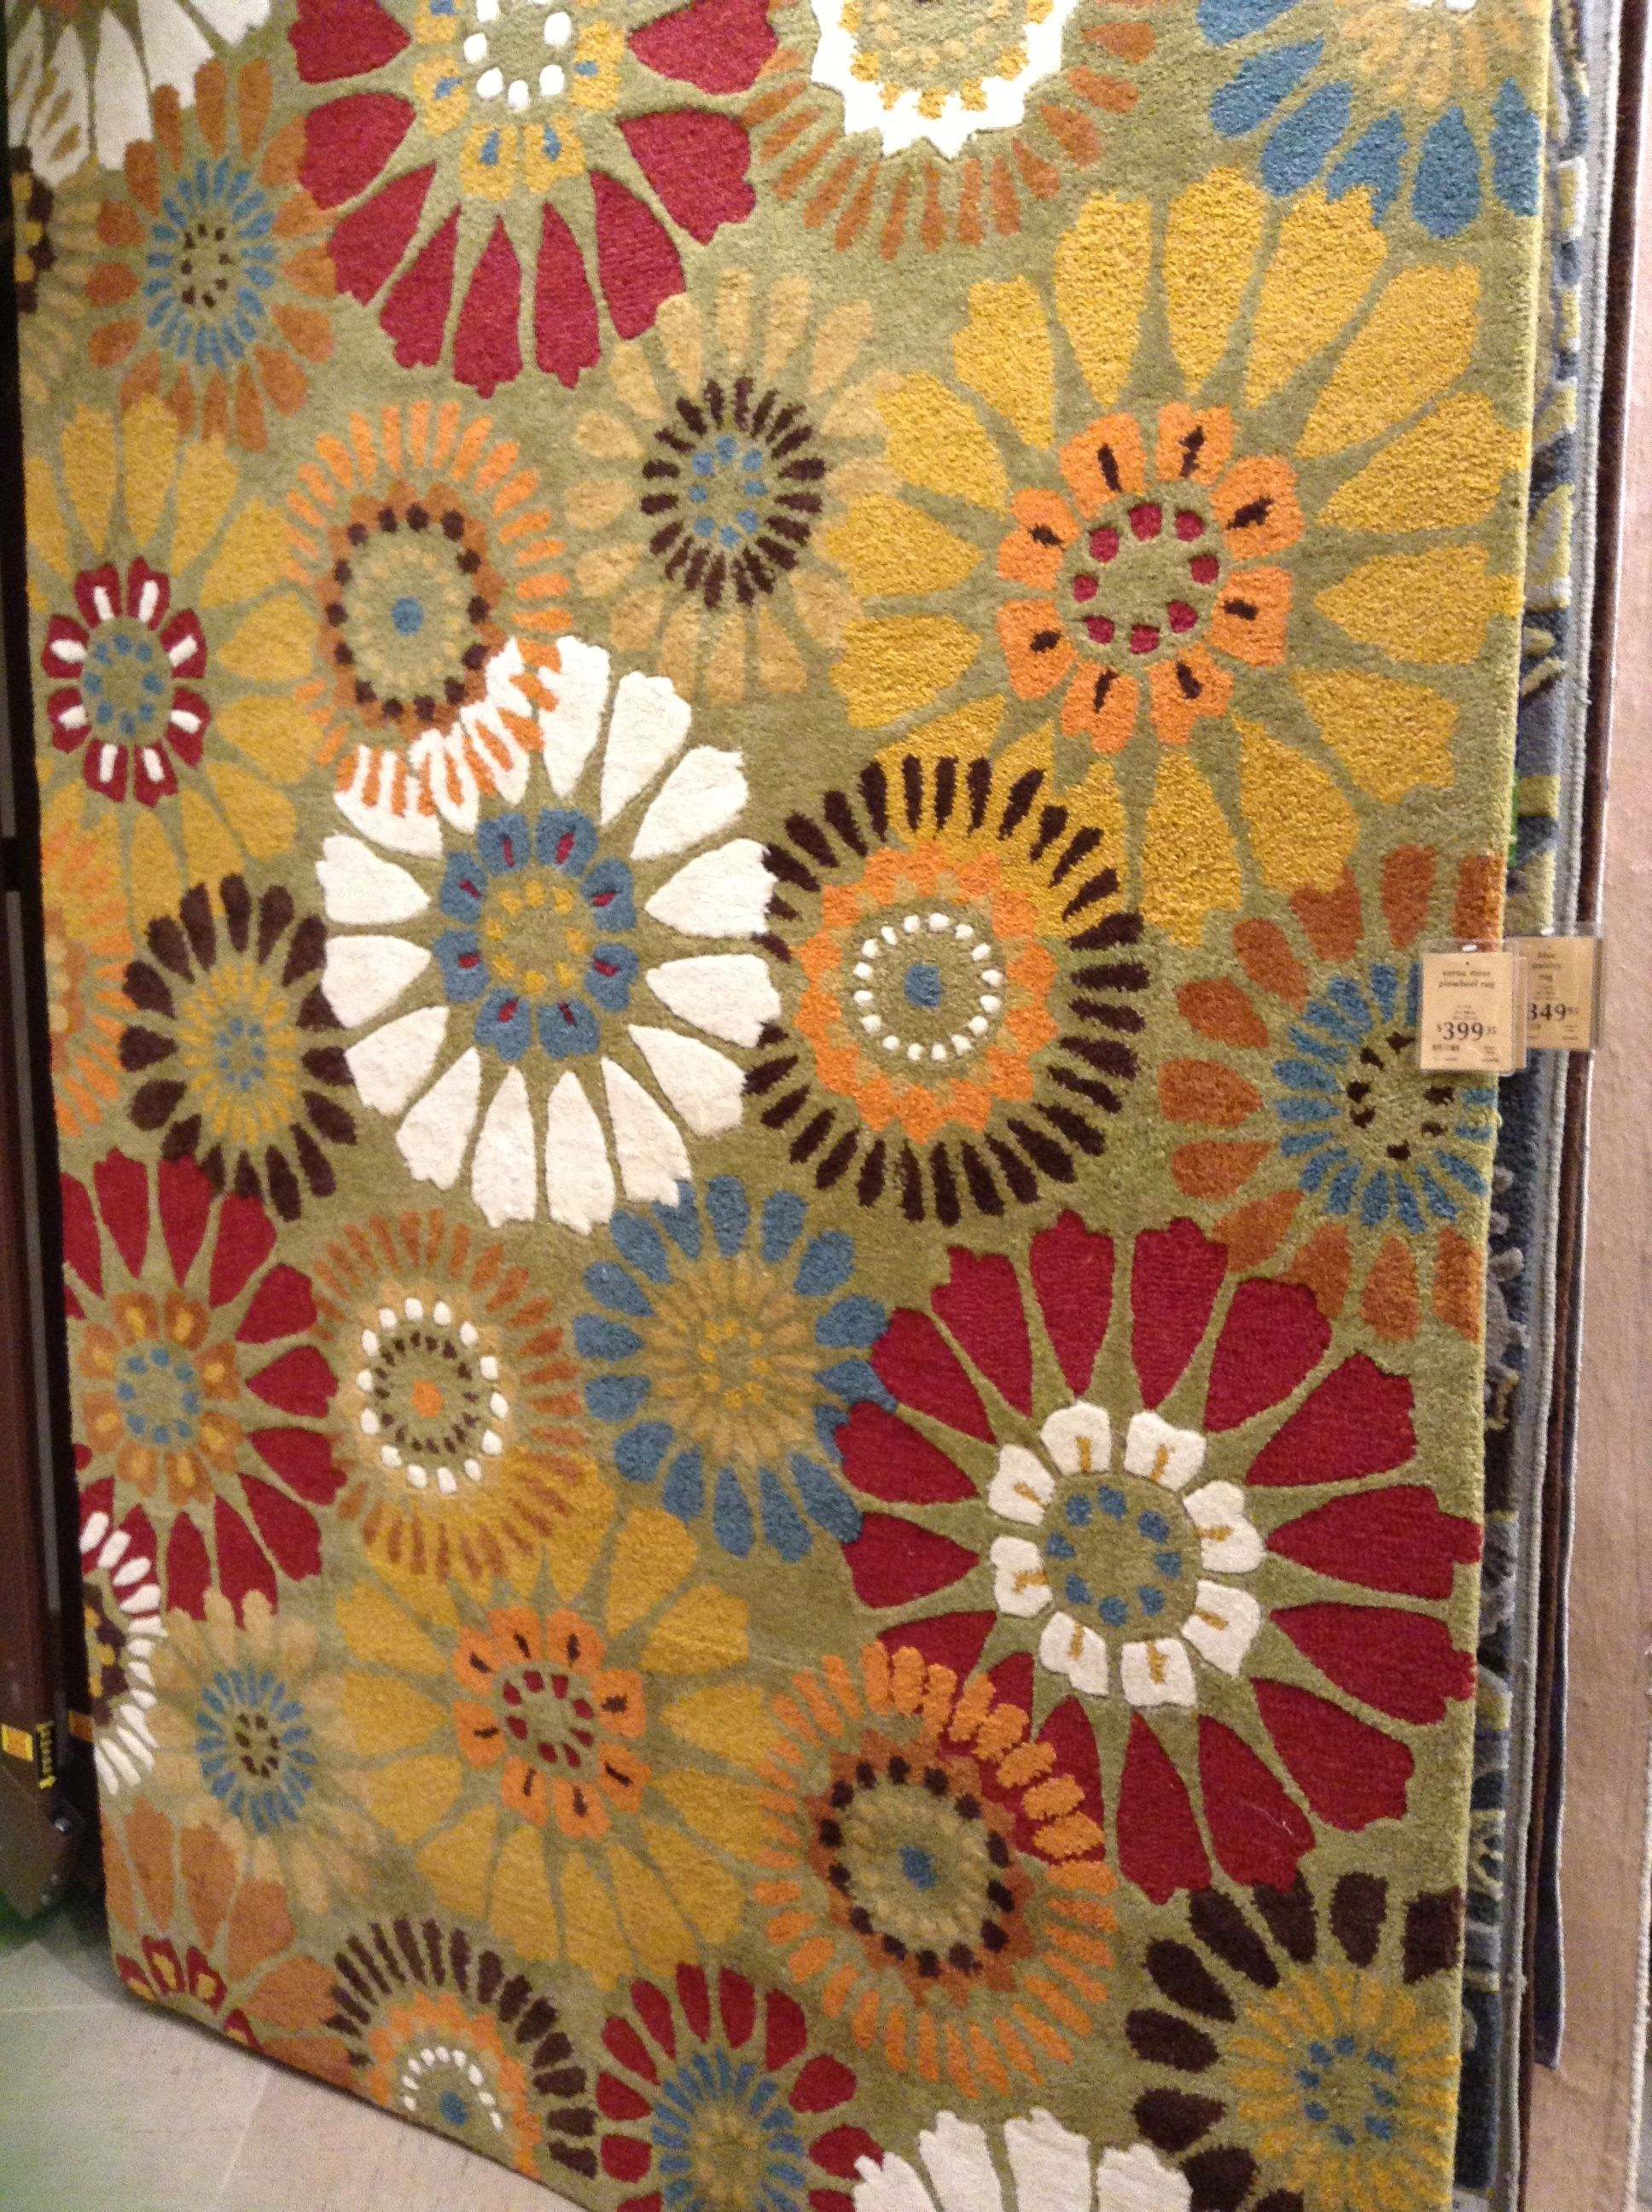 Cool Rug In Pier One Imports With An Interesting Mandala